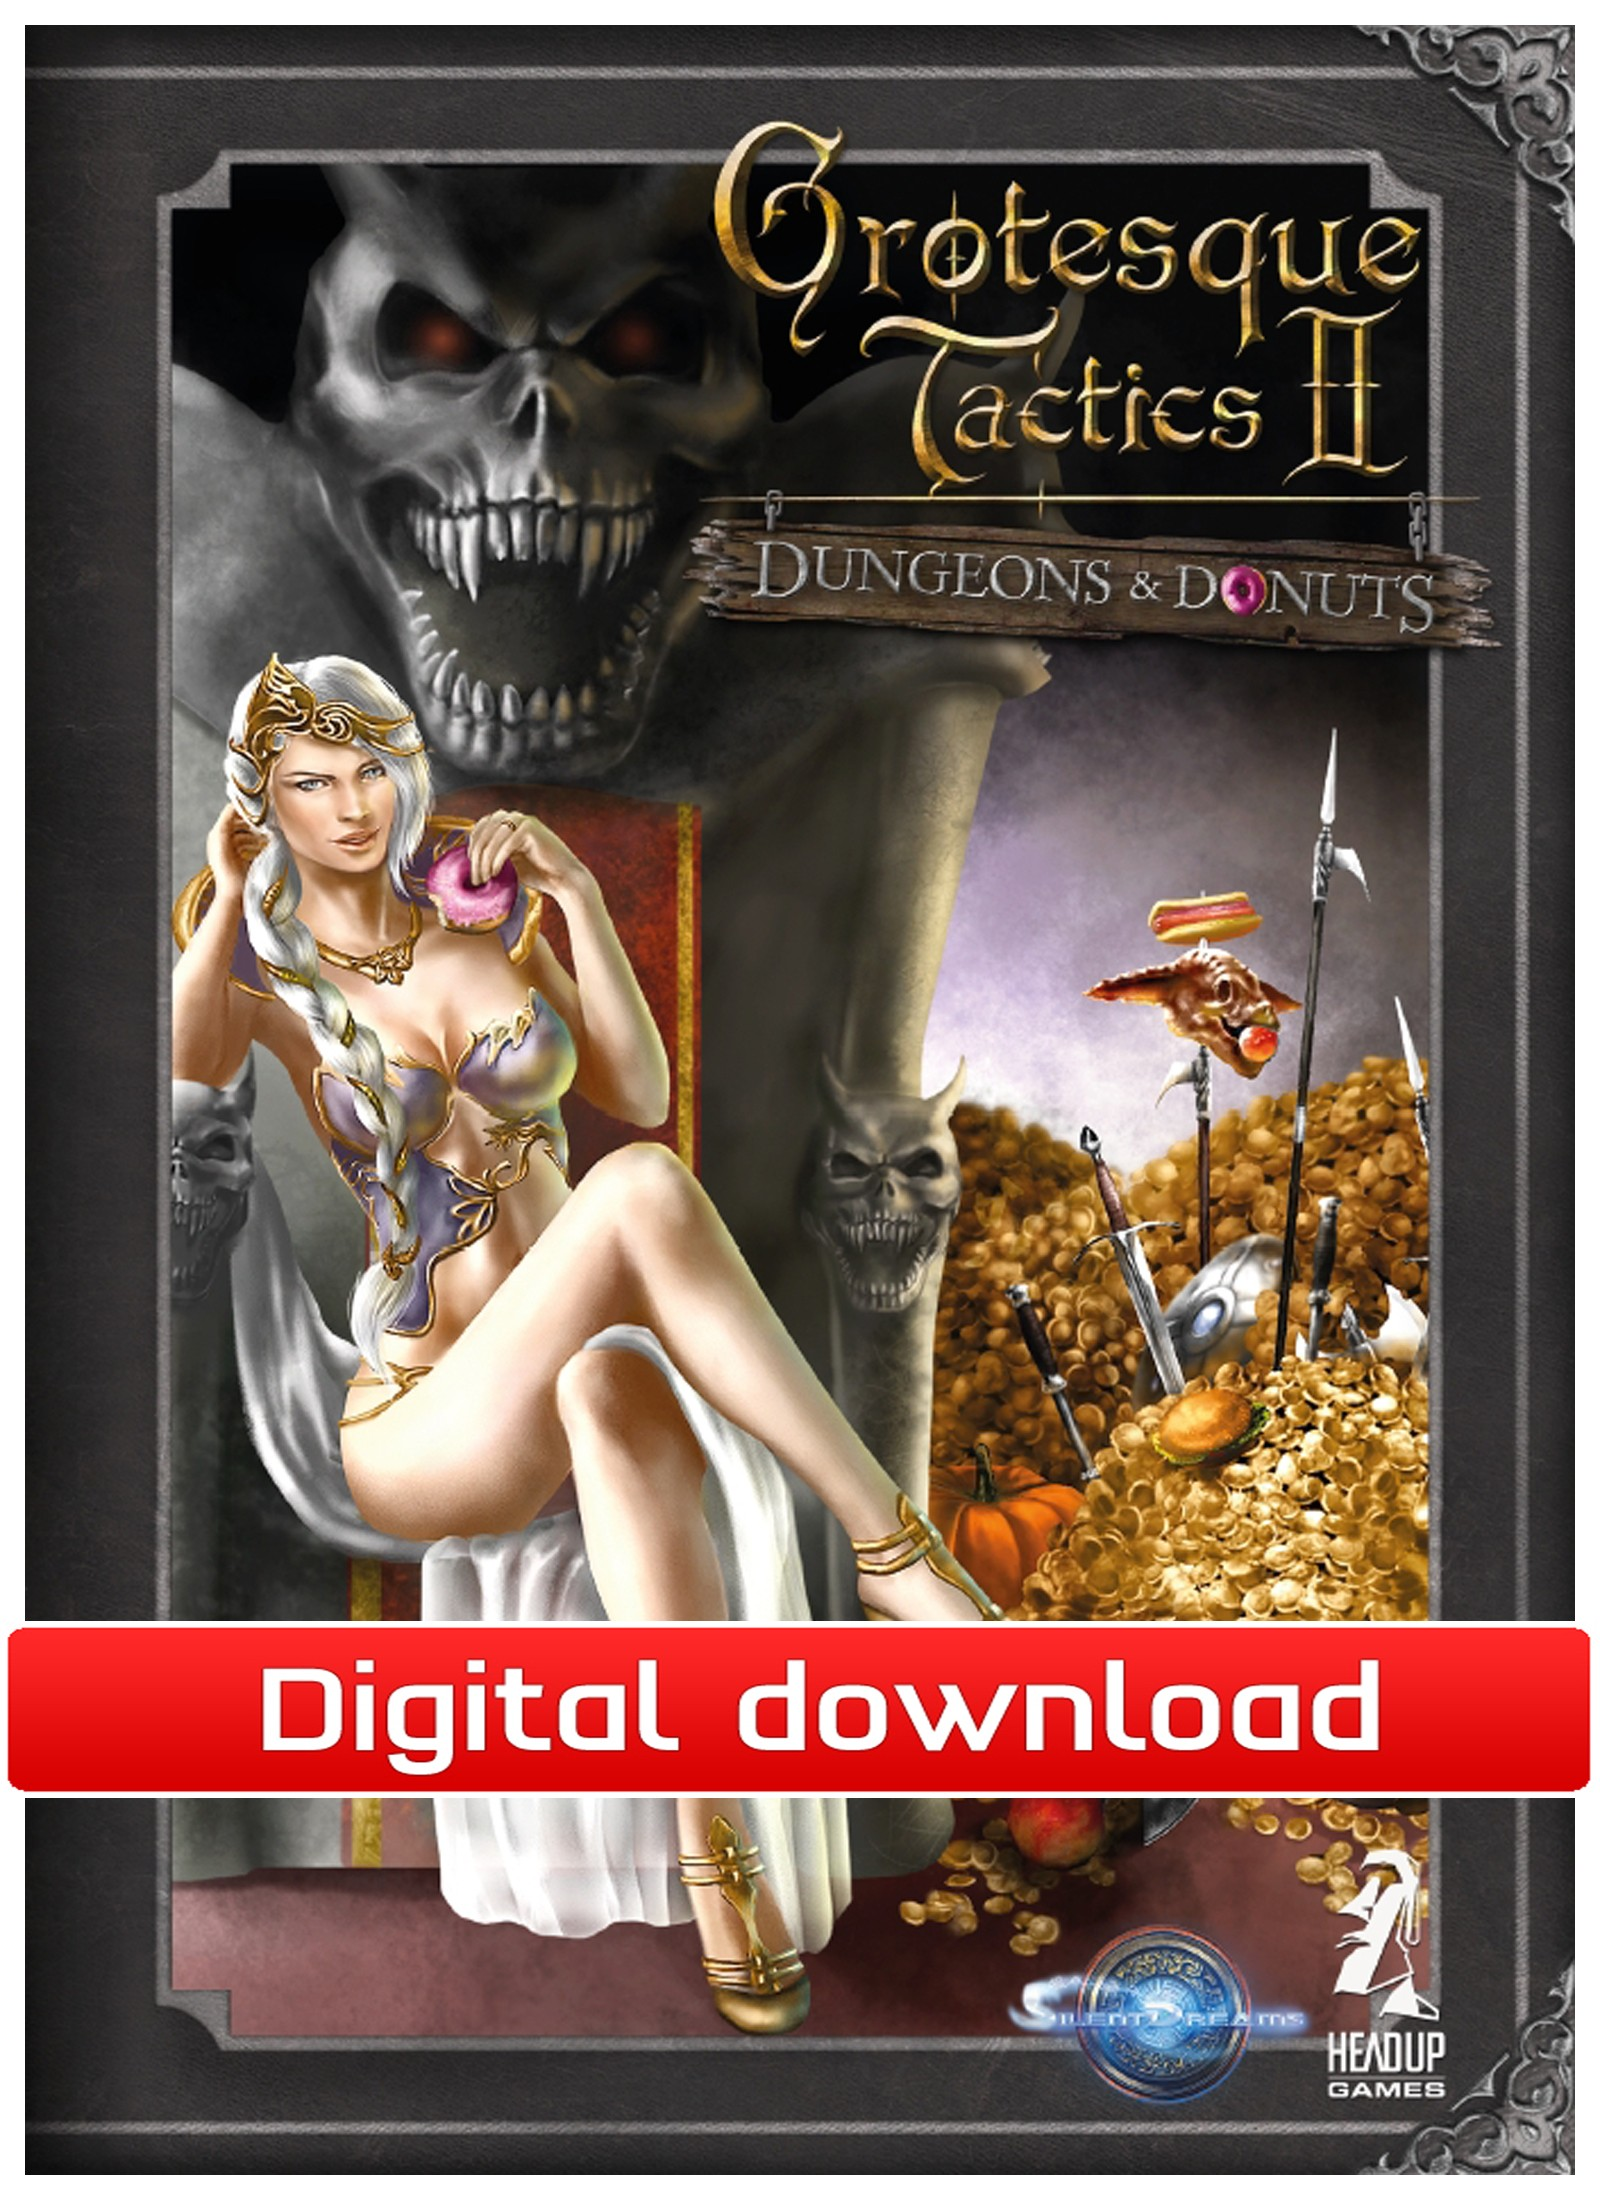 Grotesque tactics 2 nude skins adult movie